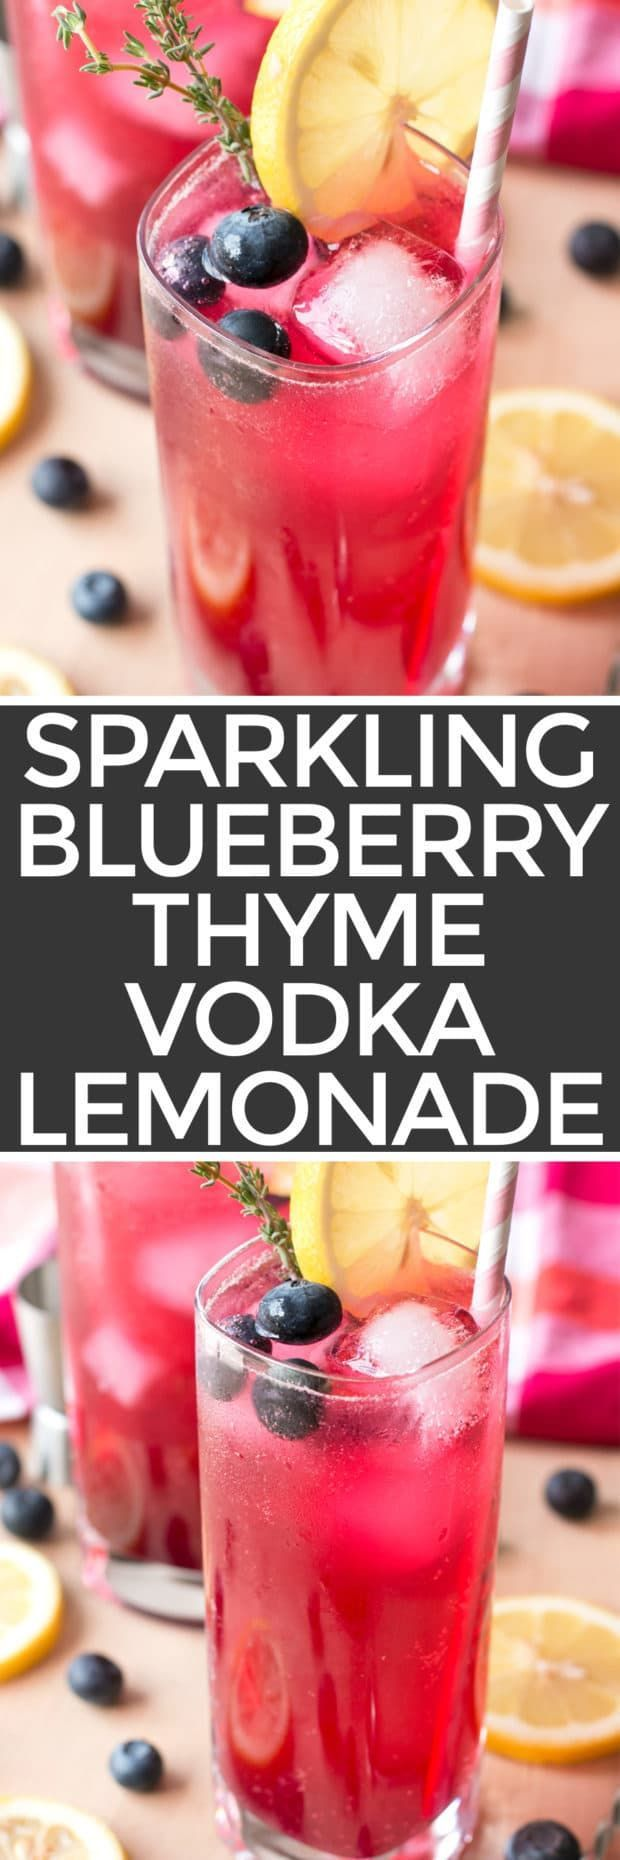 A Sparkling Blueberry Thyme Vodka Lemonade has just the right amount of fruity tartness to keep you refreshed this summer! The surprising addition of thyme brings a subtle herbaceous note that you won't be able to get enough of. Be prepared to indulge in at least two! Sparkling Blueberry Thyme Vodka Lemonade | cakenknife.com #cocktail #recipe